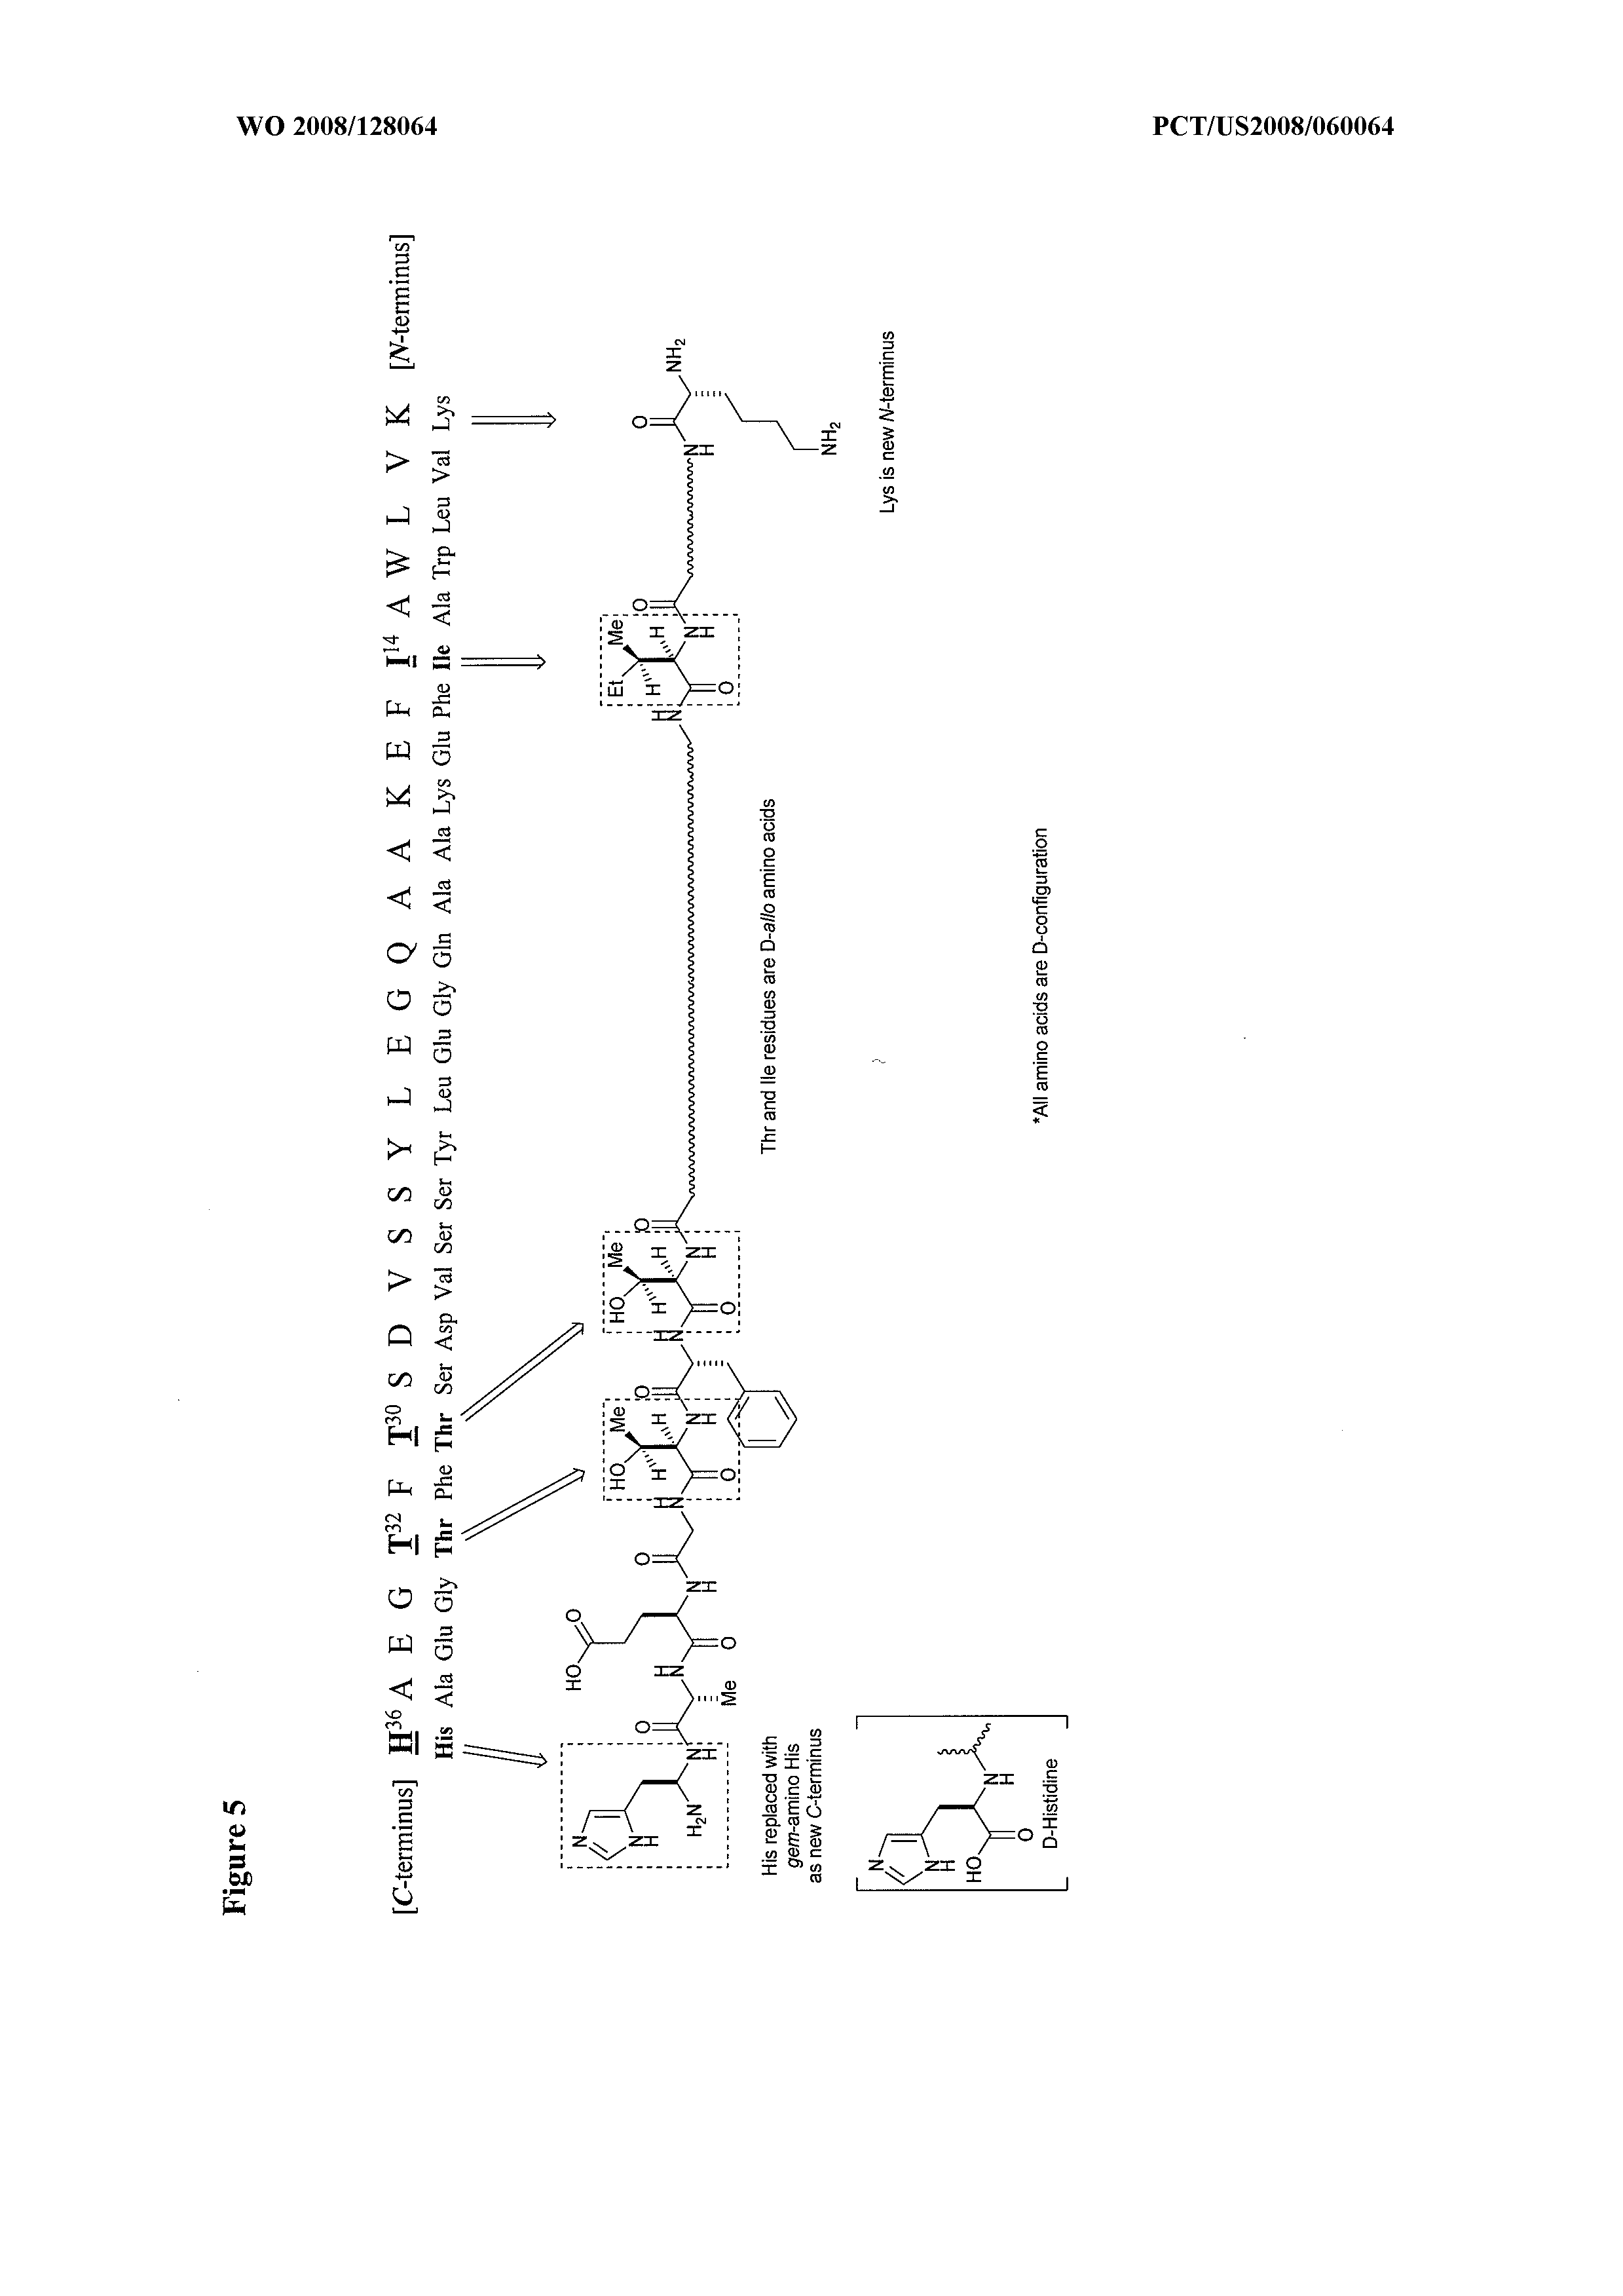 WO 2008/128064 A2 - Truncated Analogs Of Peptide And Polypeptide